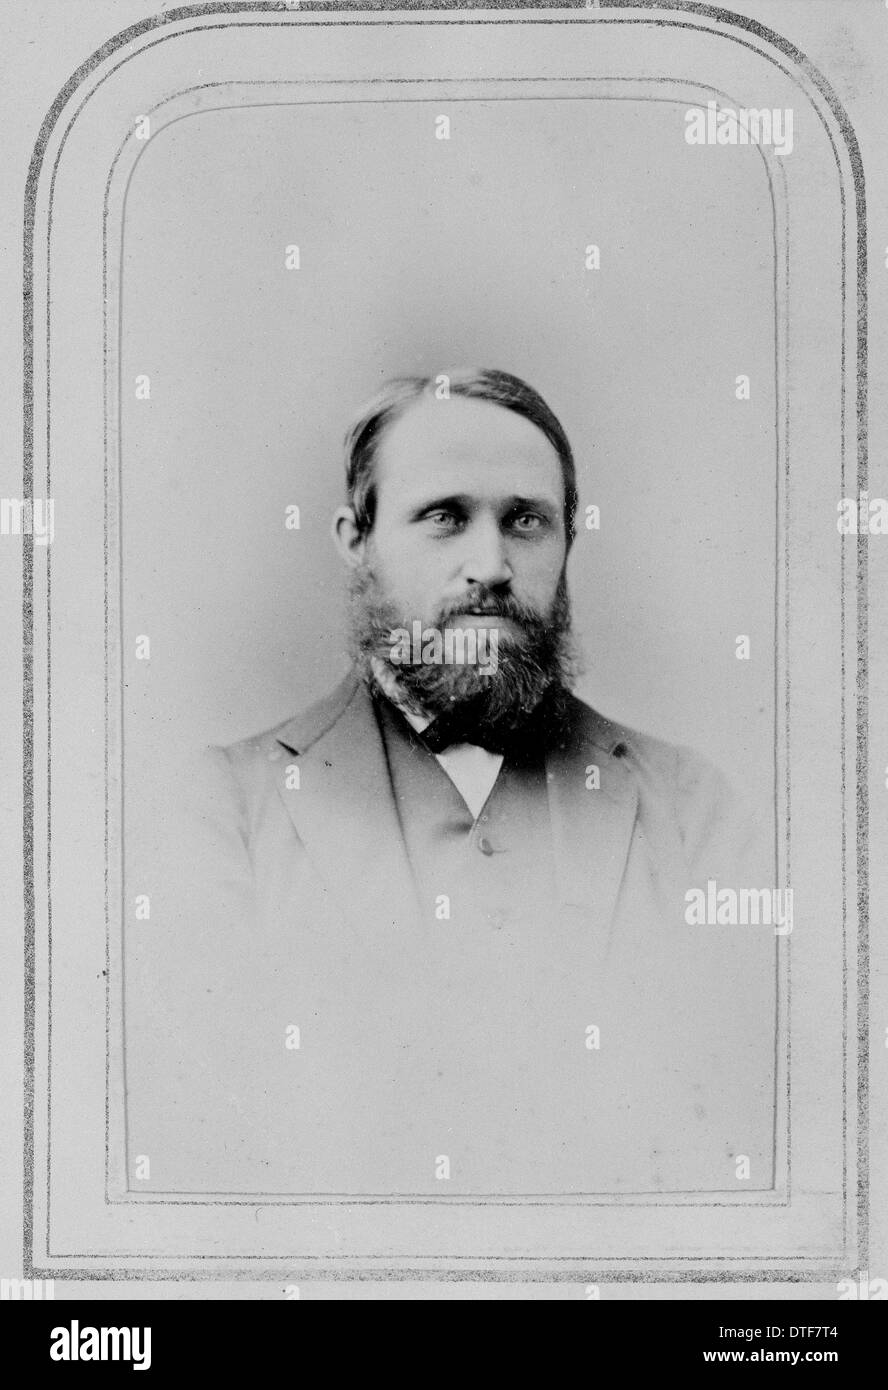 Thomas Richard Archer Briggs (1836-1891) - Stock Image